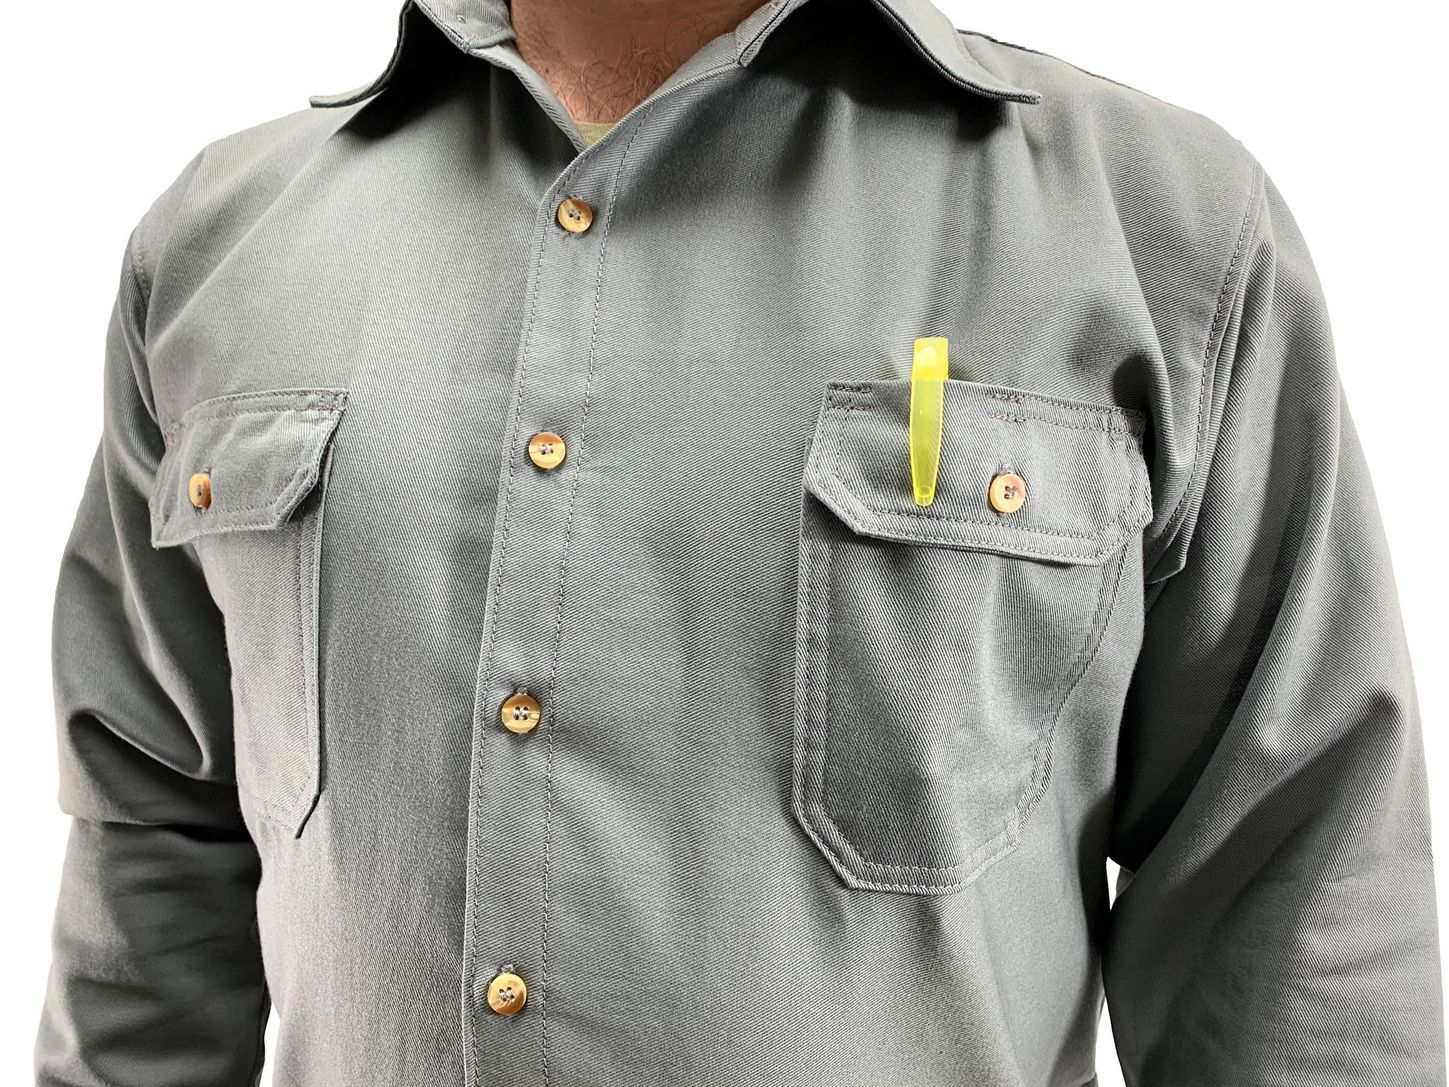 chicago-protective-apparel-625-usgy7-7oz-gray-ultrasoft-arc-rated-work-shirt-charcoal-grey-example.jpg